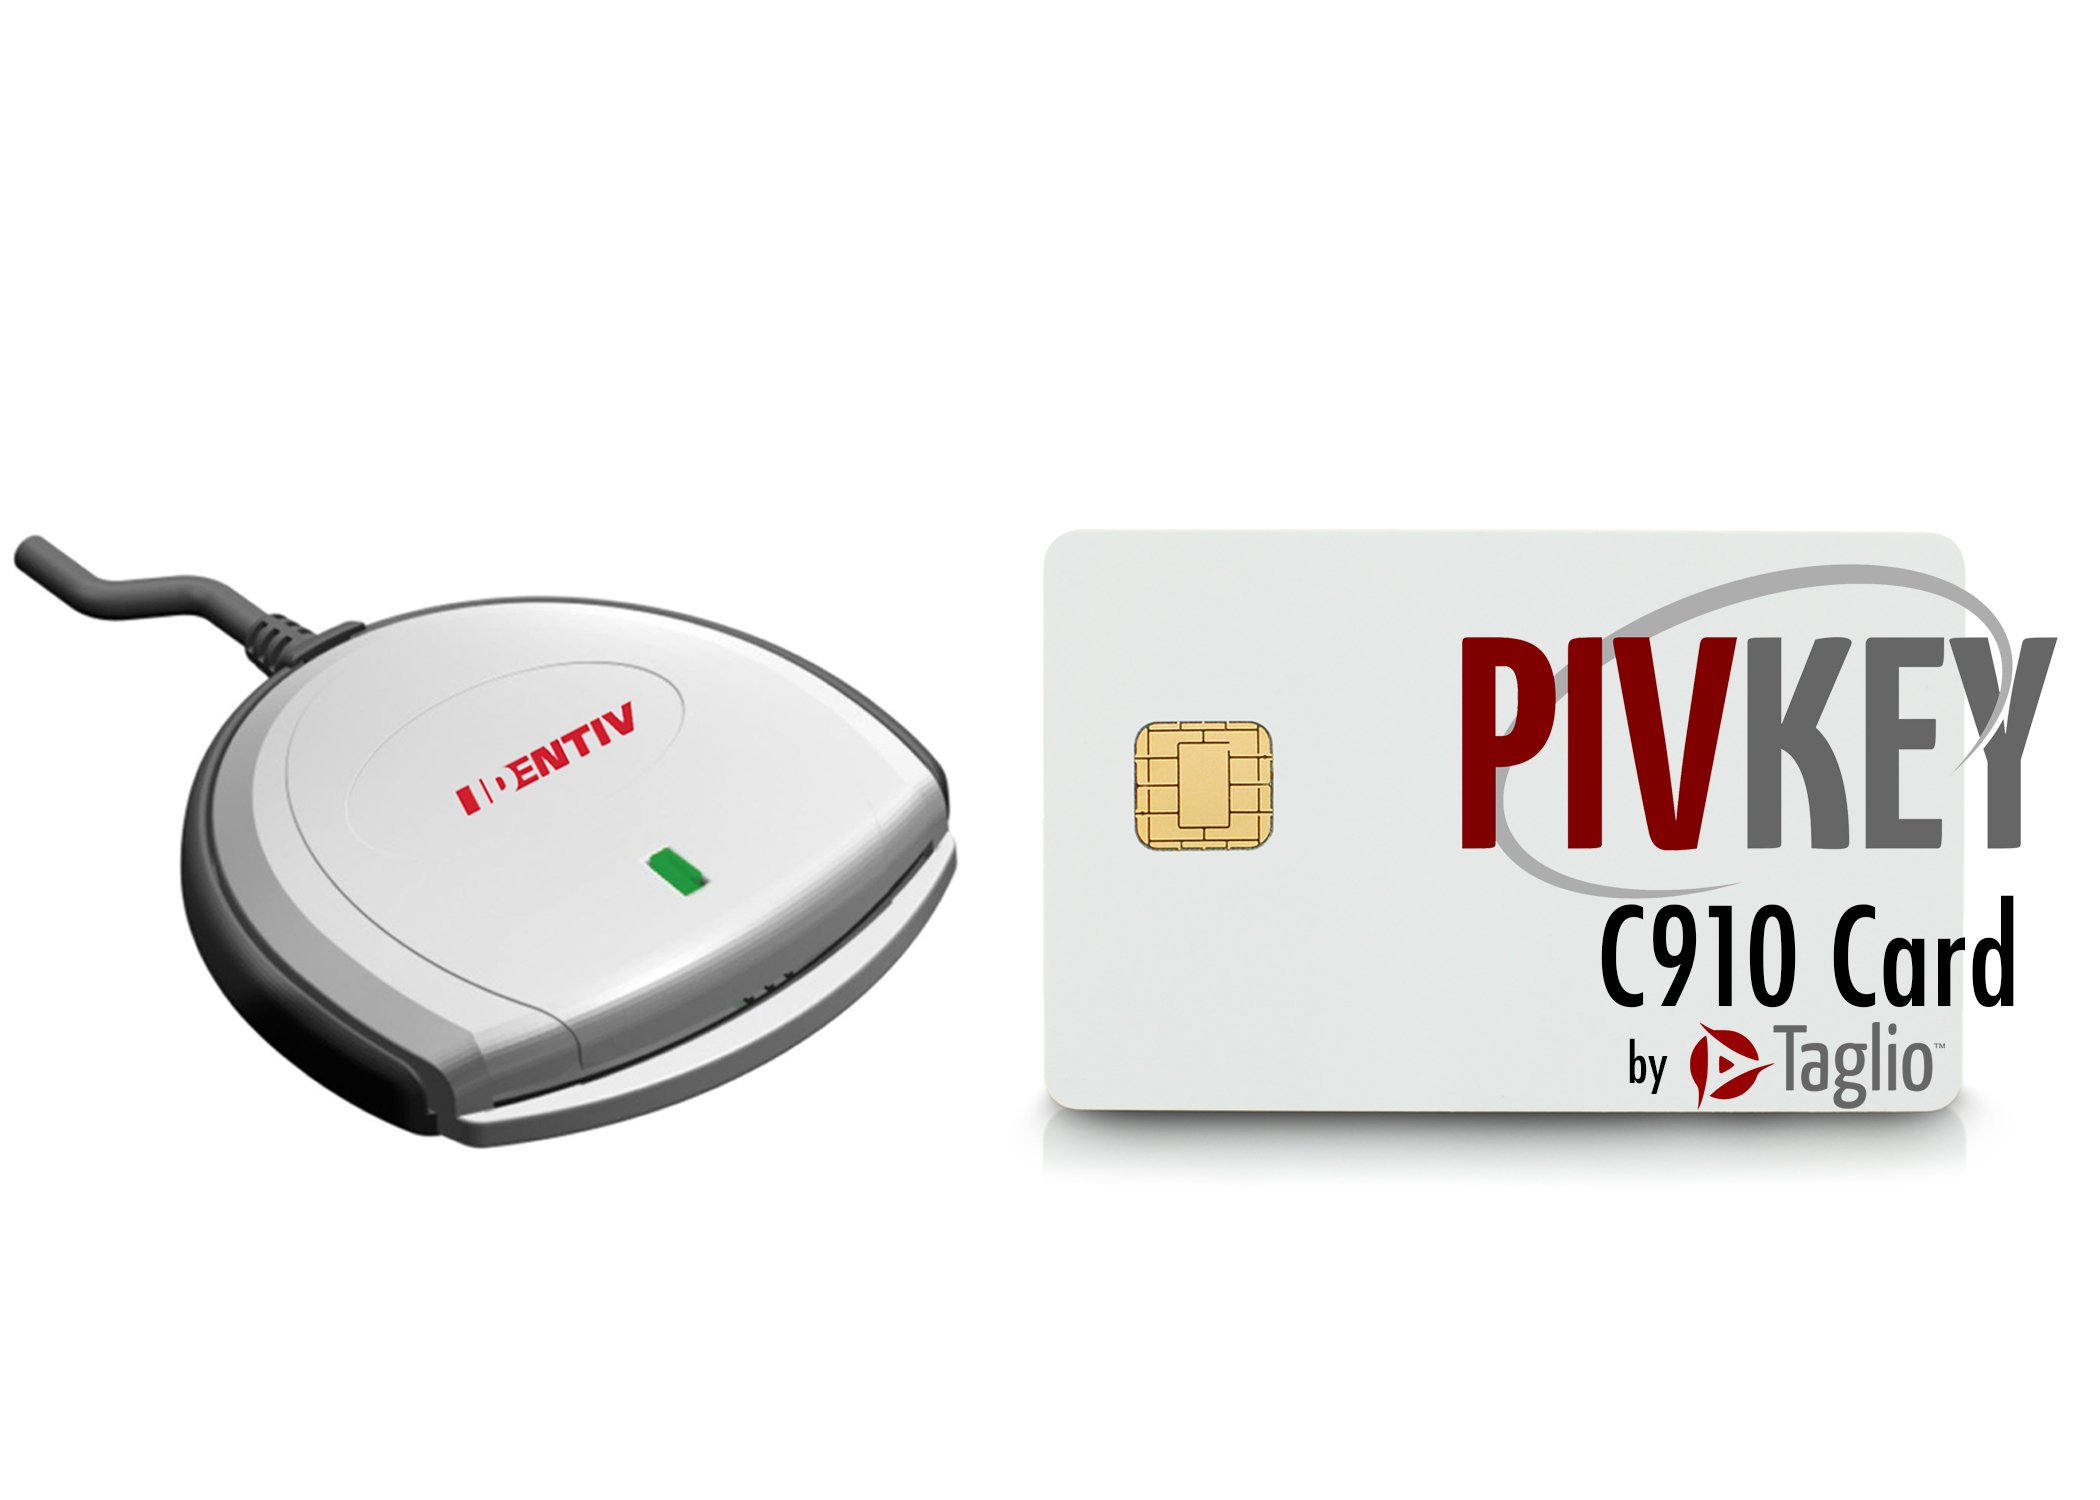 Identiv SCR3310V2 USB Smart Card Reader Bundle with PIVKey C910 Smart Card by Identiv